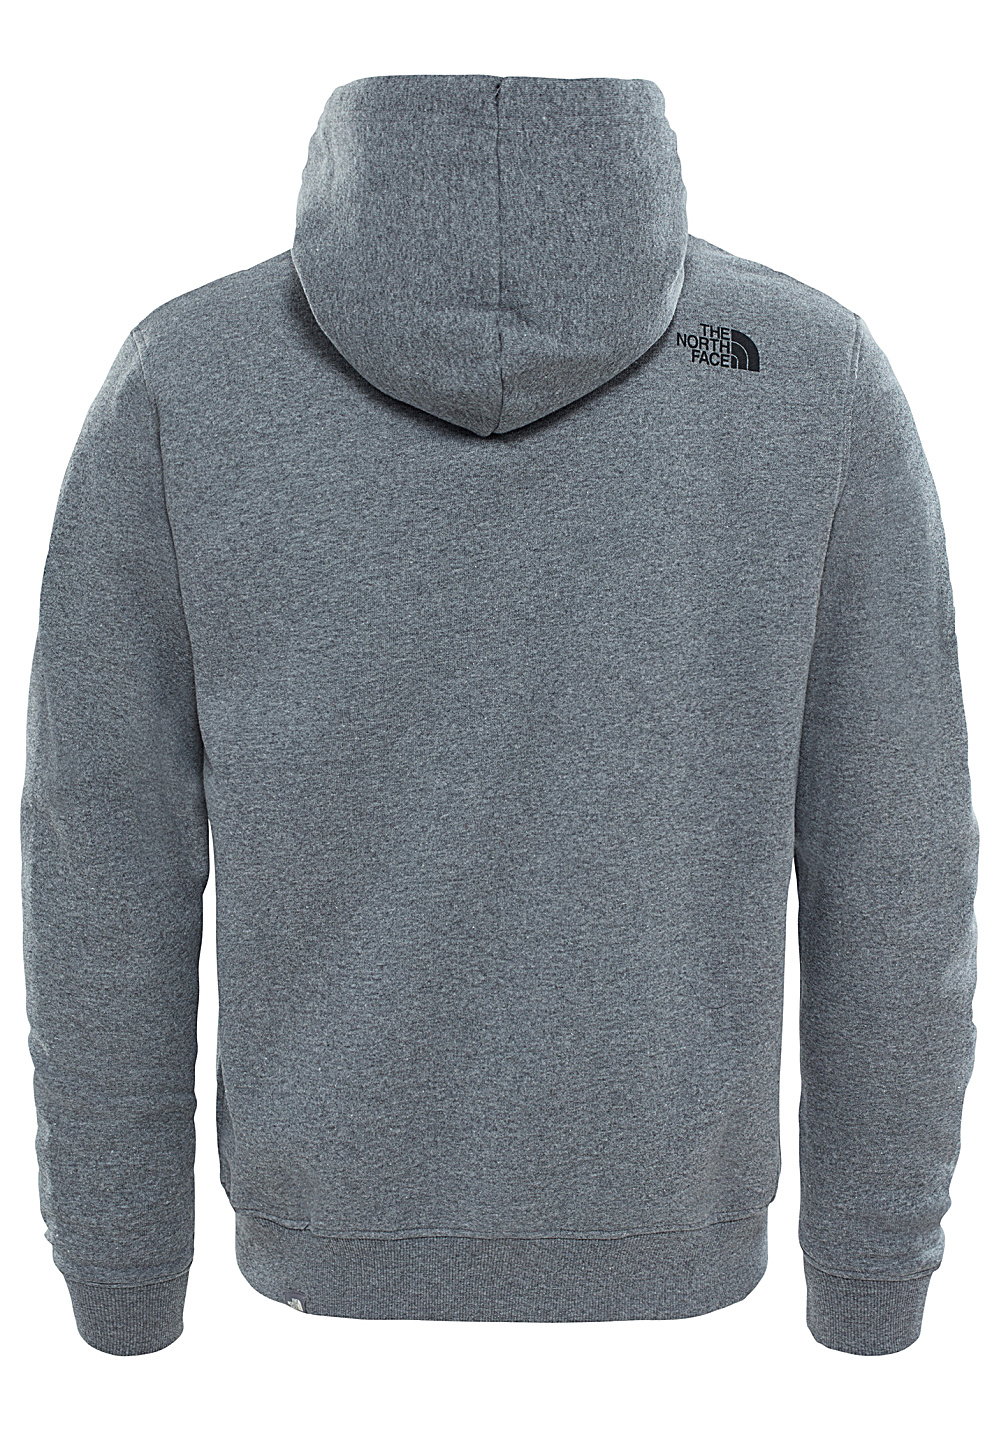 a5f07238c THE NORTH FACE Open Gate Fullzip - Hooded Jacket for Men - Grey